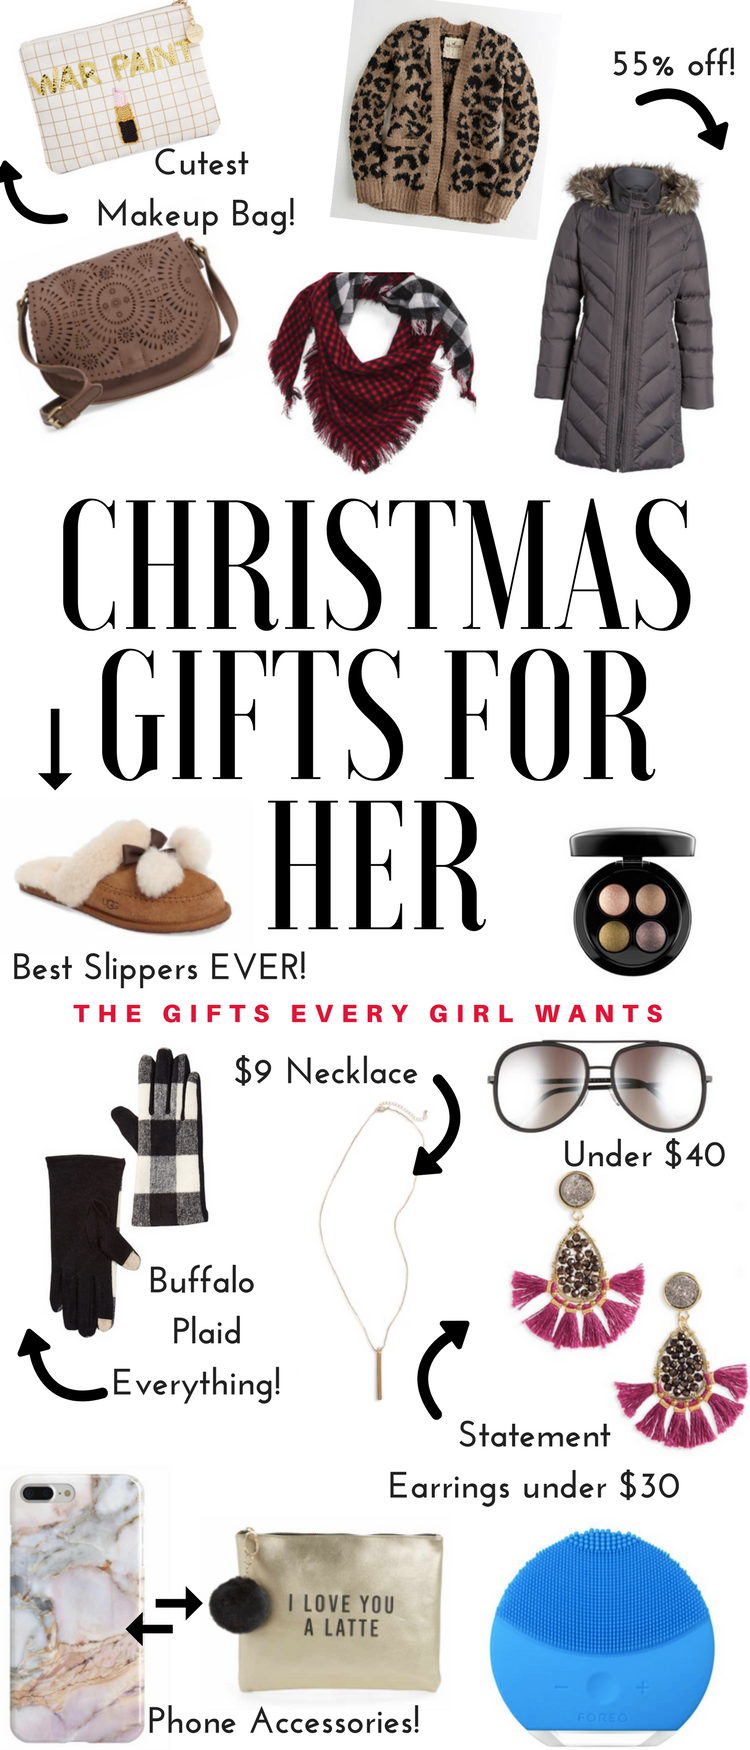 Christmas Gifts For Everyone Everyday With Bay Fashion Gifts Fashion Gifts For Her